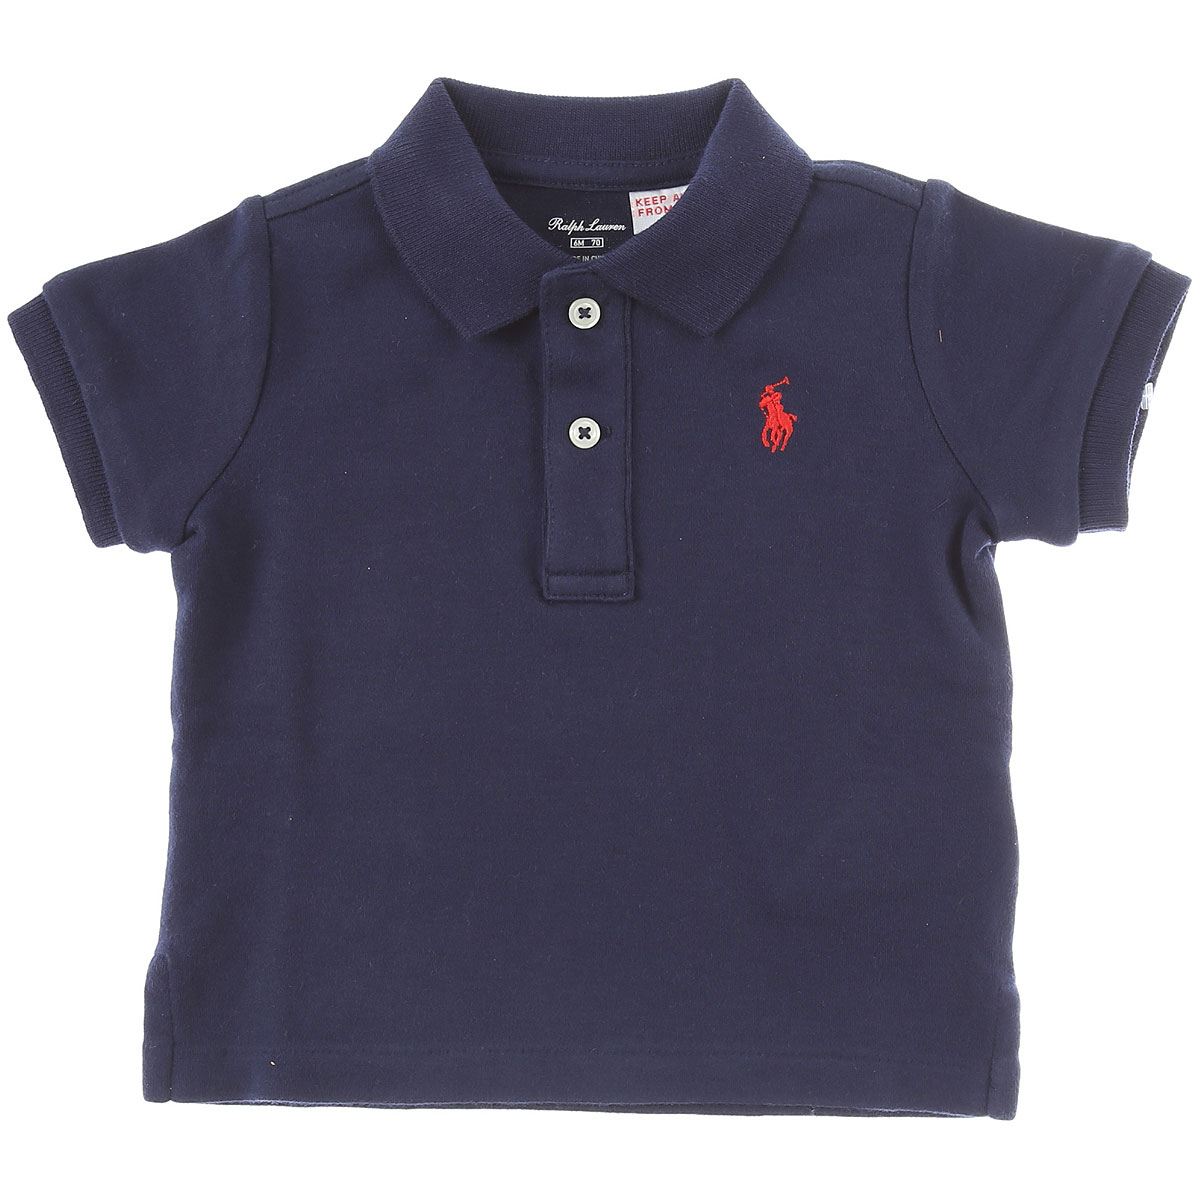 Ralph Lauren Baby Polo Shirt for Boys On Sale in Outlet, navy, Cotton, 2019, 12M 18M 2Y 2Y 6M 9M